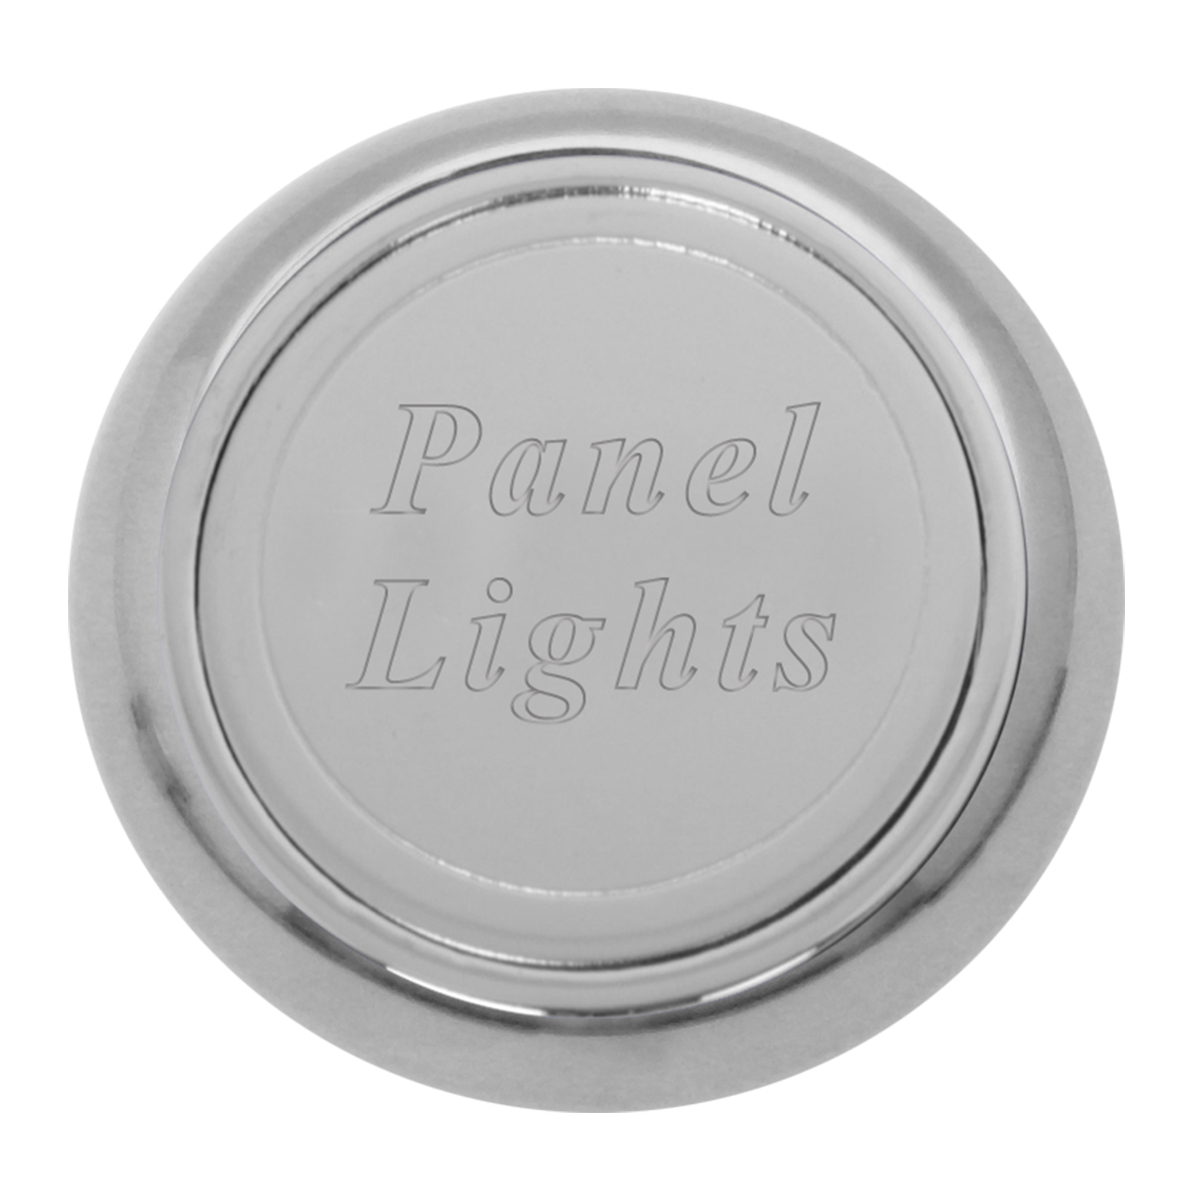 96056 Dashboard Control Knob w/ Panel Light Script